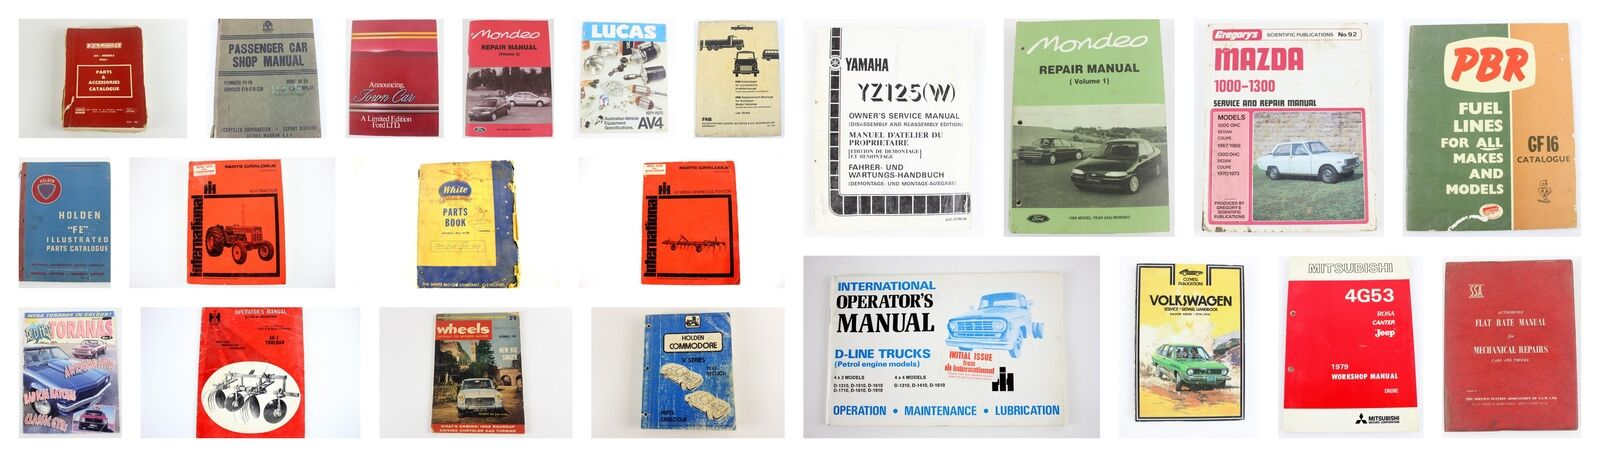 About Time Manuals